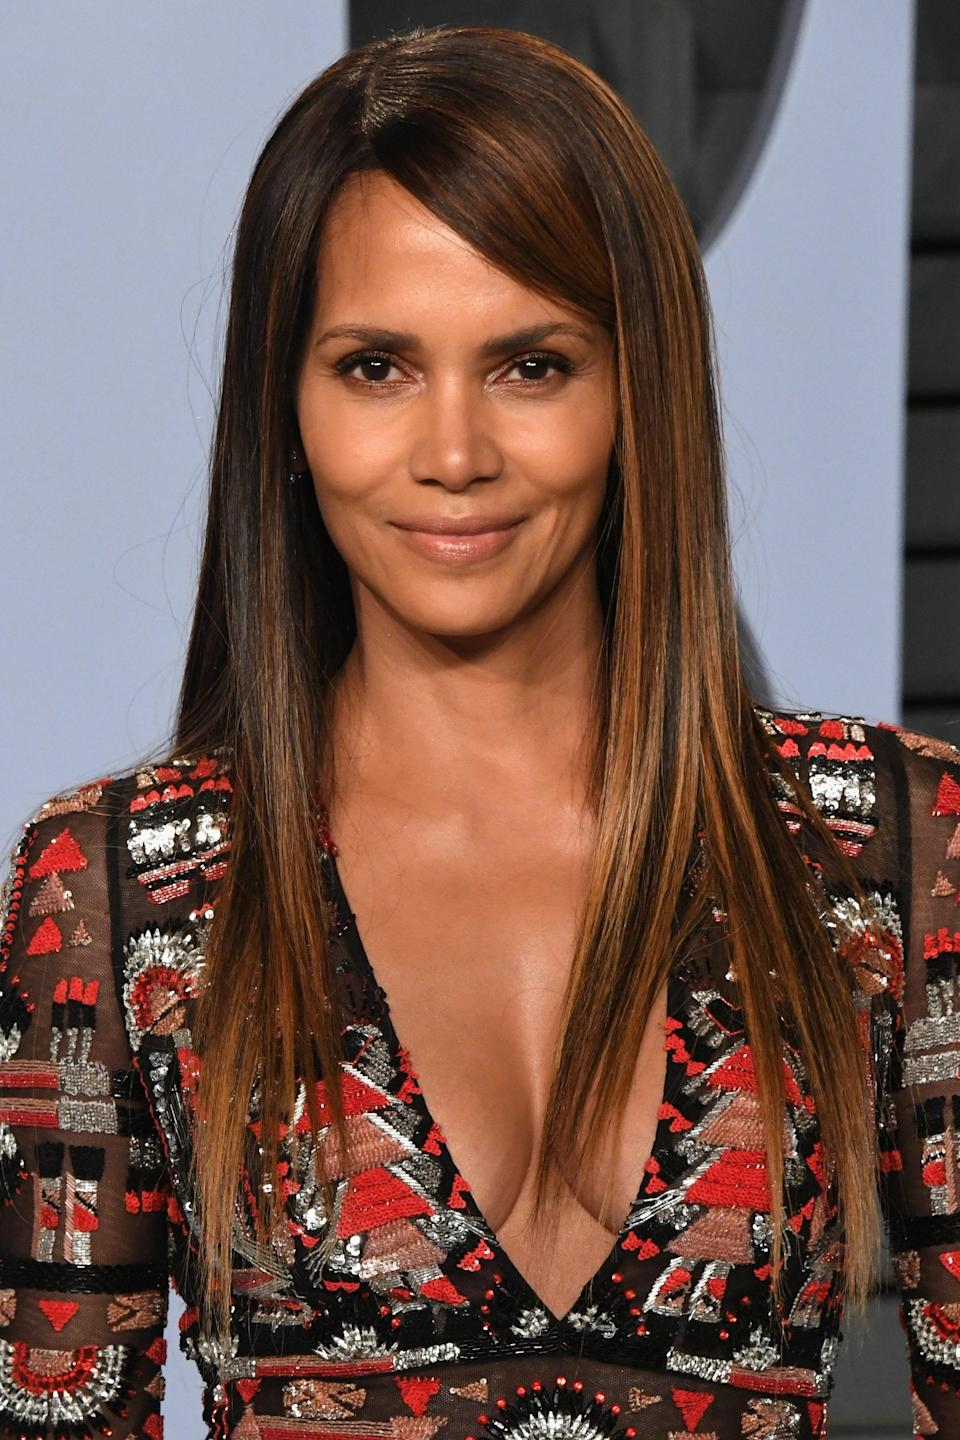 """<p>Halle Berry is now a household name, but it wasn't always that way. When she first hopped onto the Hollywood scene in the '90s, she became known for her pixie haircut. The interesting part is that she wasn't trying to make a statement with her hair, she just didn't want to risk hairstylists who didn't know how to do it.</p> <p>""""That's why I had short hair,"""" <a href=""""https://apnews.com/298c0720f9594d05aeffae26802c7ac6"""" rel=""""nofollow noopener"""" target=""""_blank"""" data-ylk=""""slk:she said in 2019"""" class=""""link rapid-noclick-resp"""">she said in 2019</a>. """"[Maintaining] it was easy. I think as people of color, especially in the business, we haven't always had people that know how to manage our hair. Those days are different now."""" Things have definitely improved, but as we've learned, they're not all that <em>different</em>.</p>"""